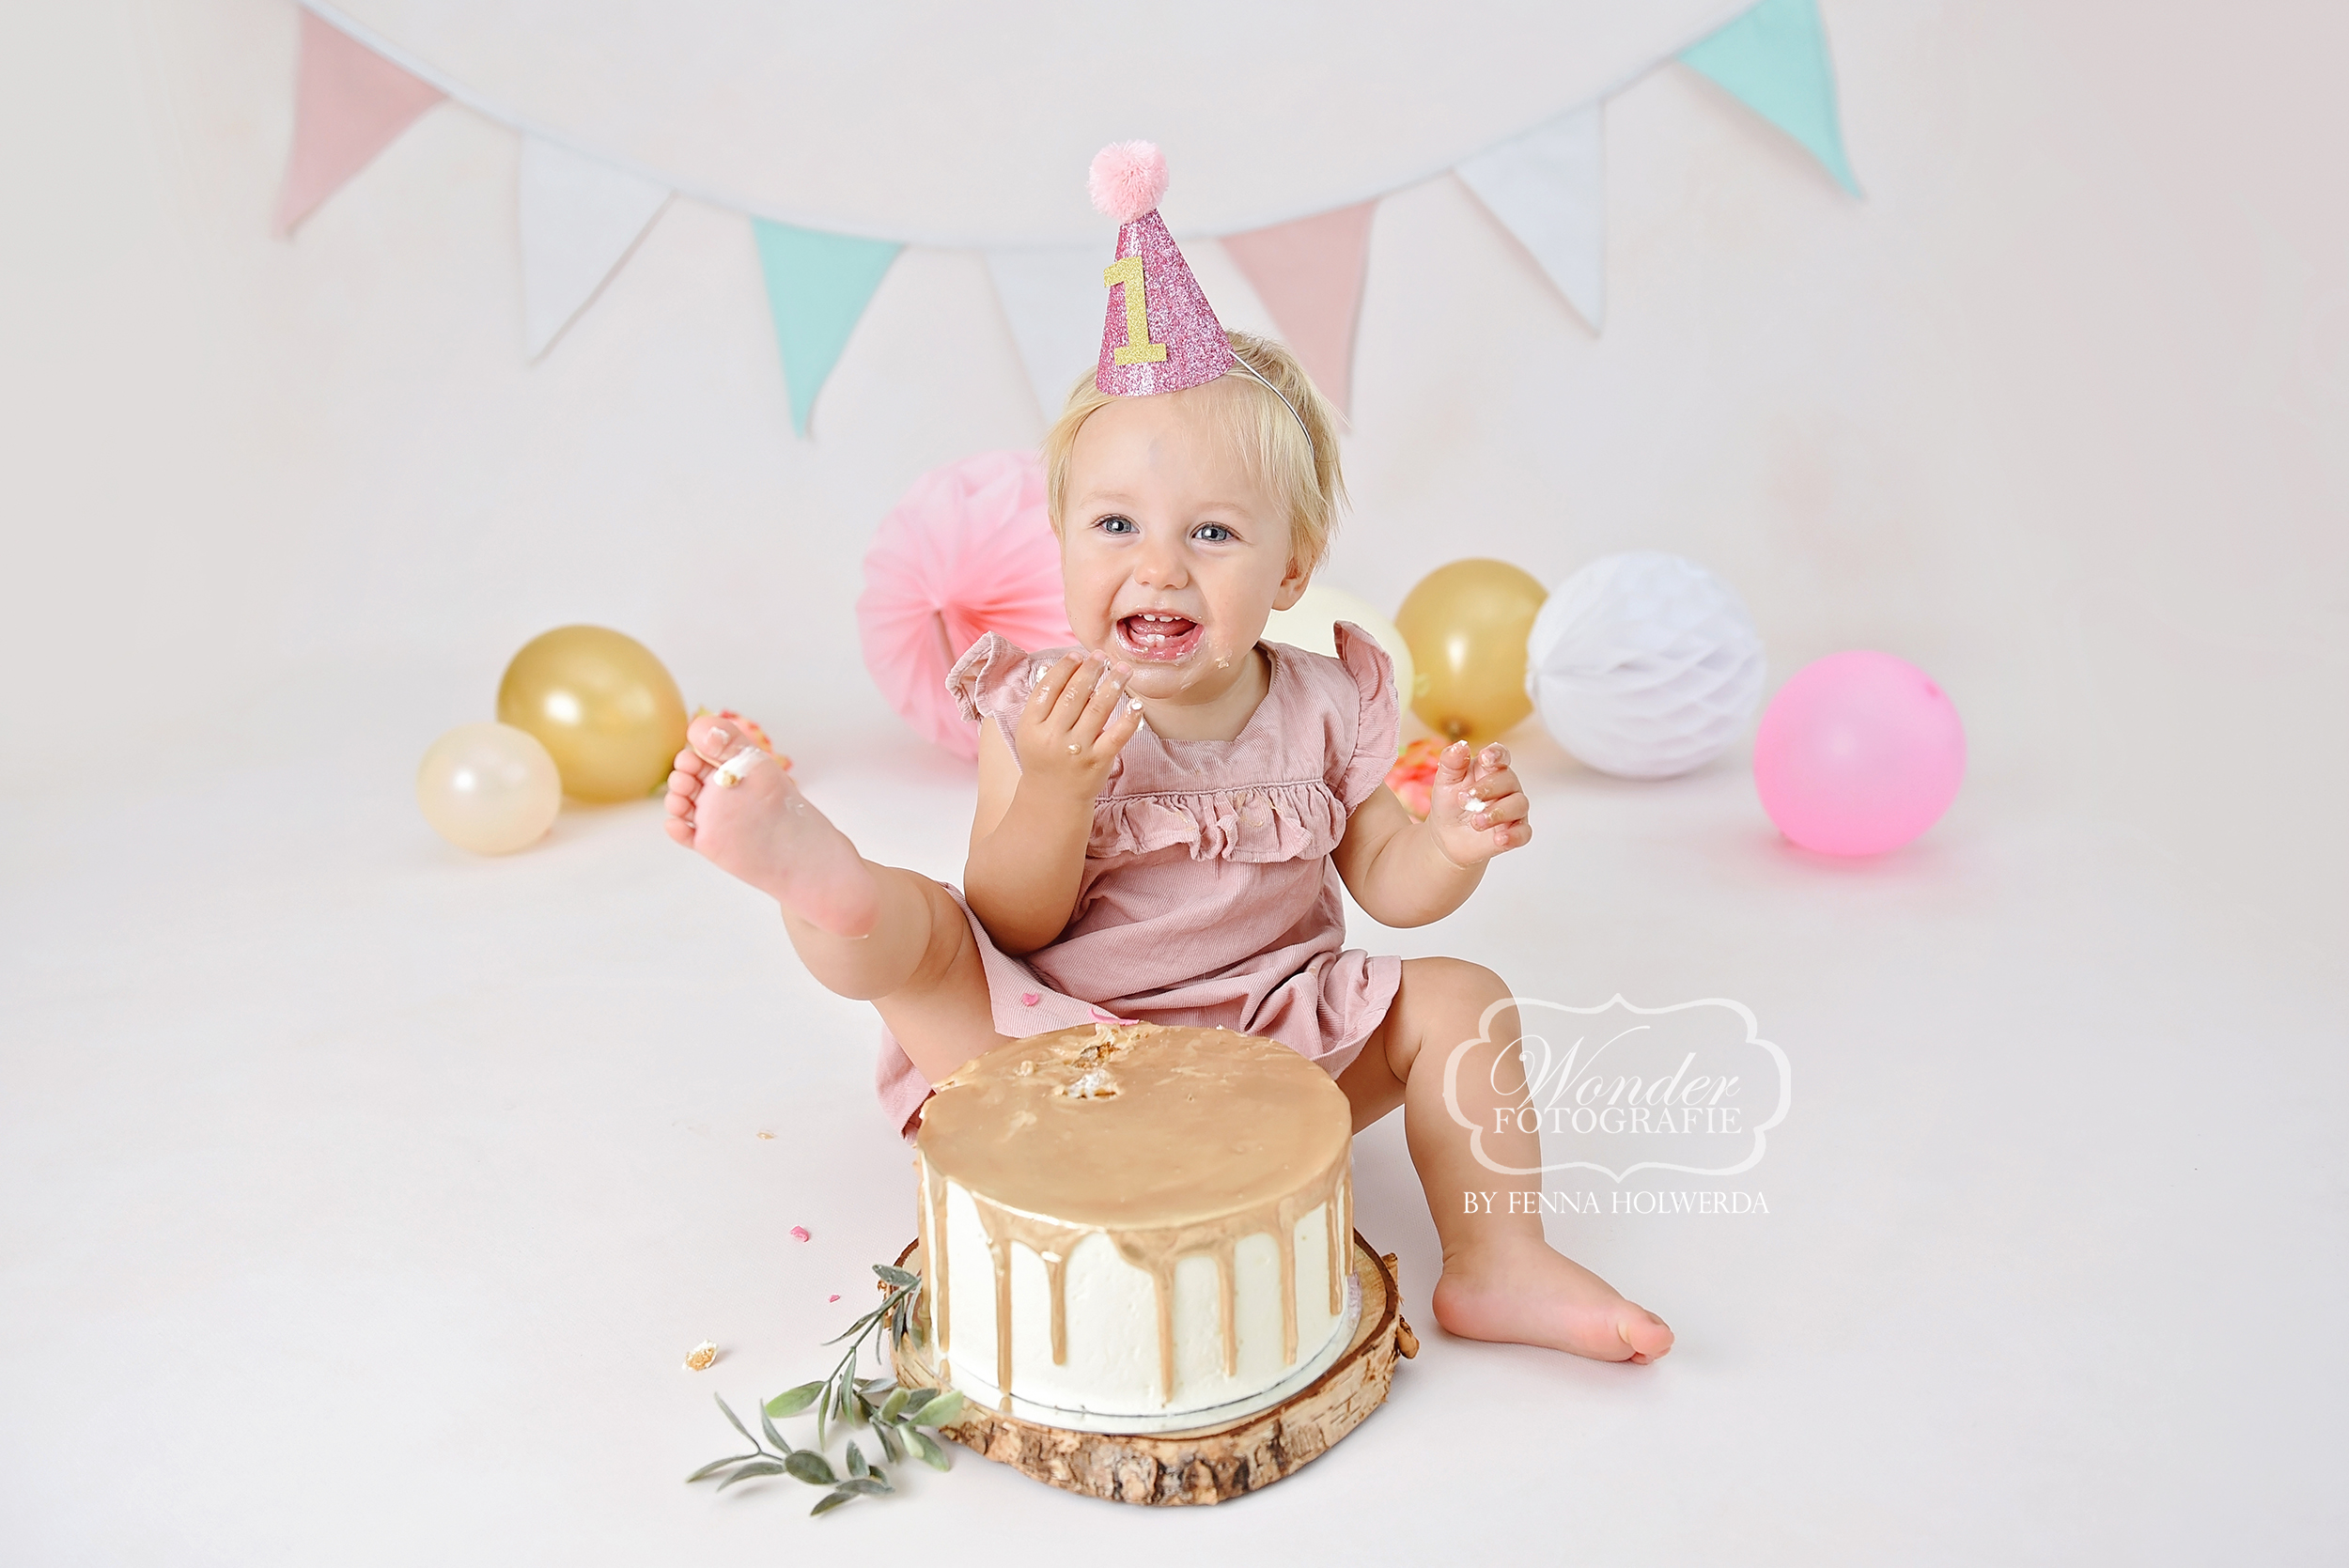 6 Cake Smash Fotoshoot baby fotograaf ph